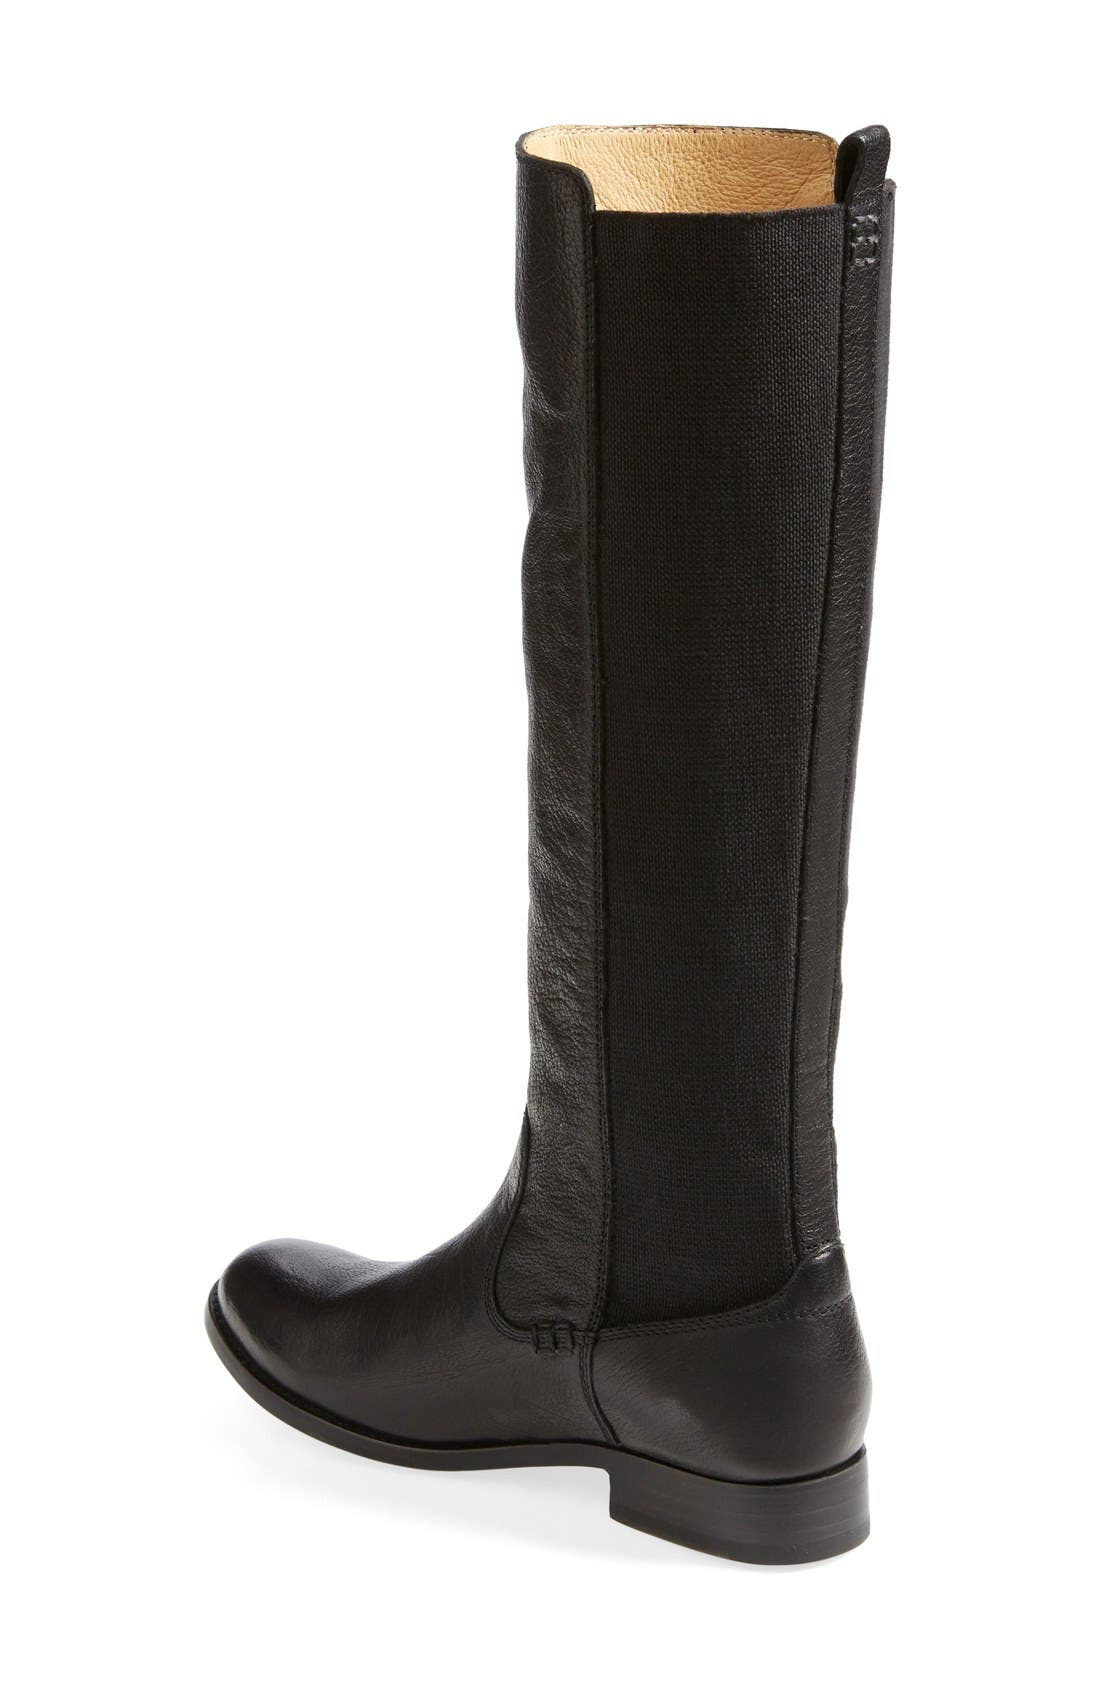 'Molly' Gore Leather Boot,                             Alternate thumbnail 6, color,                             001